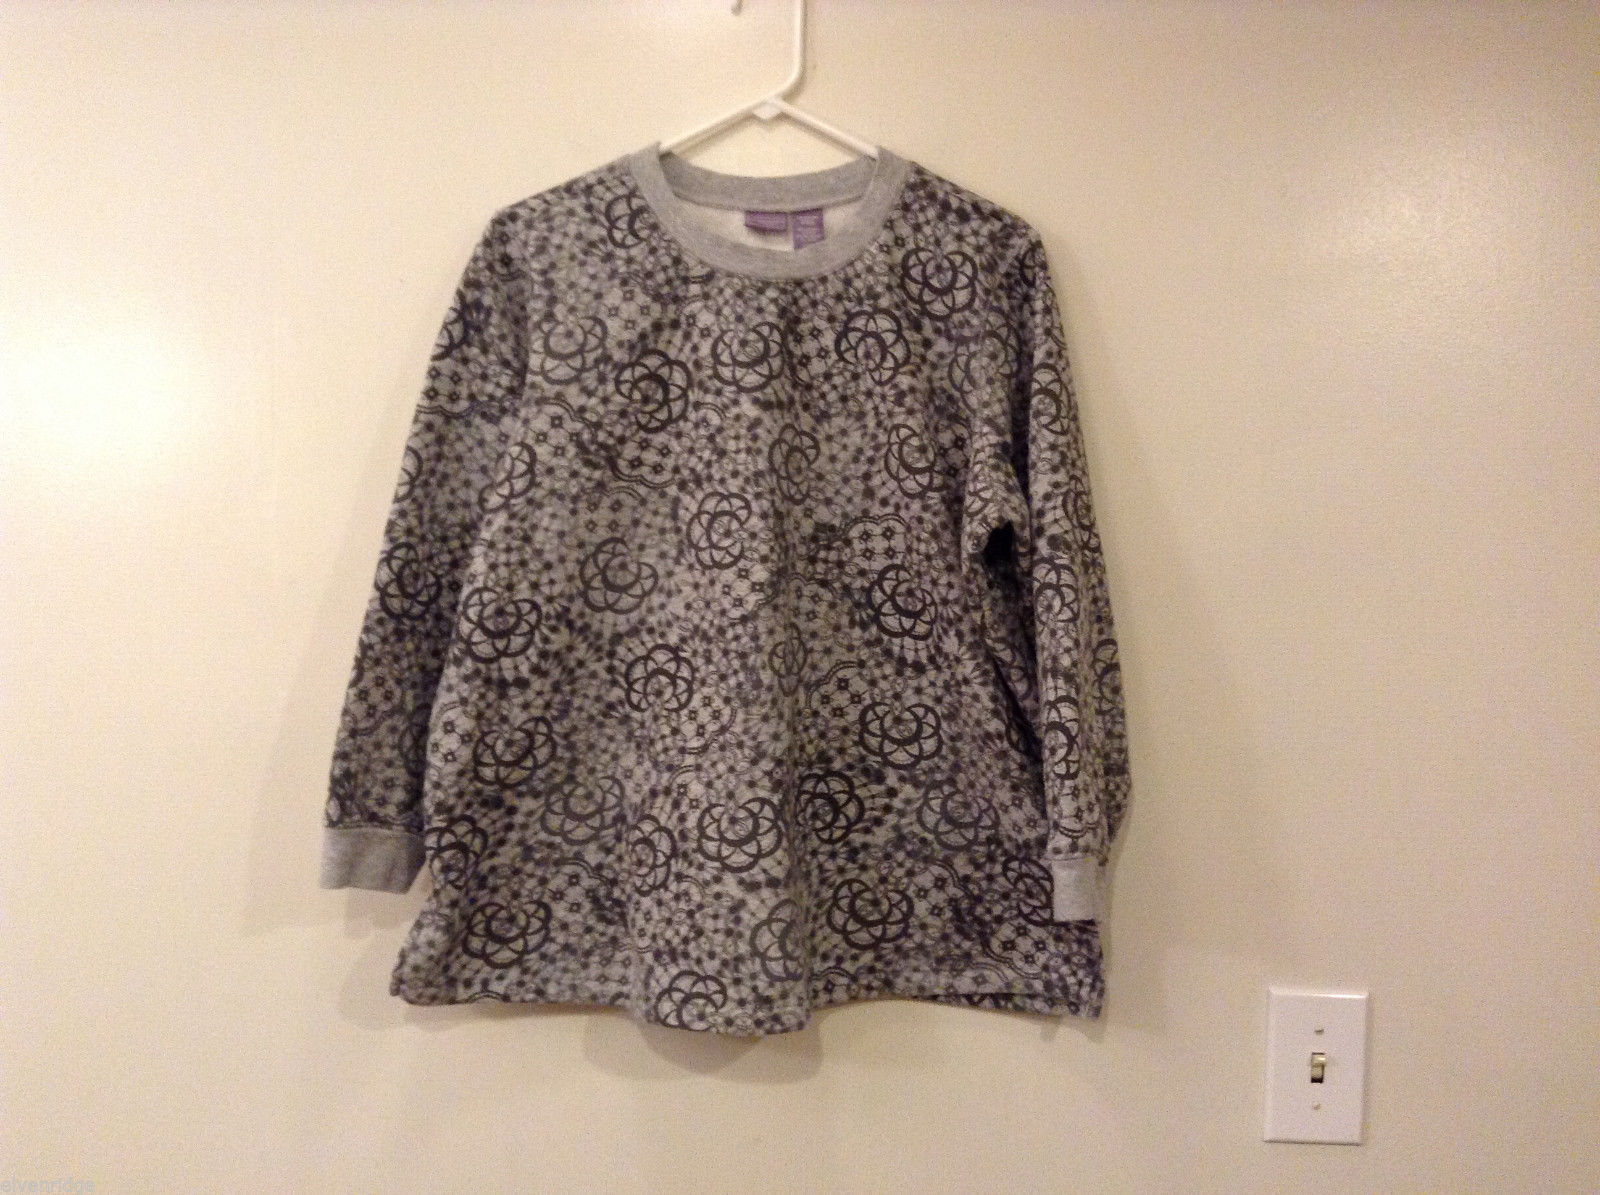 Laura Scott Woman Gray Abstract Floral Print Sweater Sweatshirt, size 16/18W